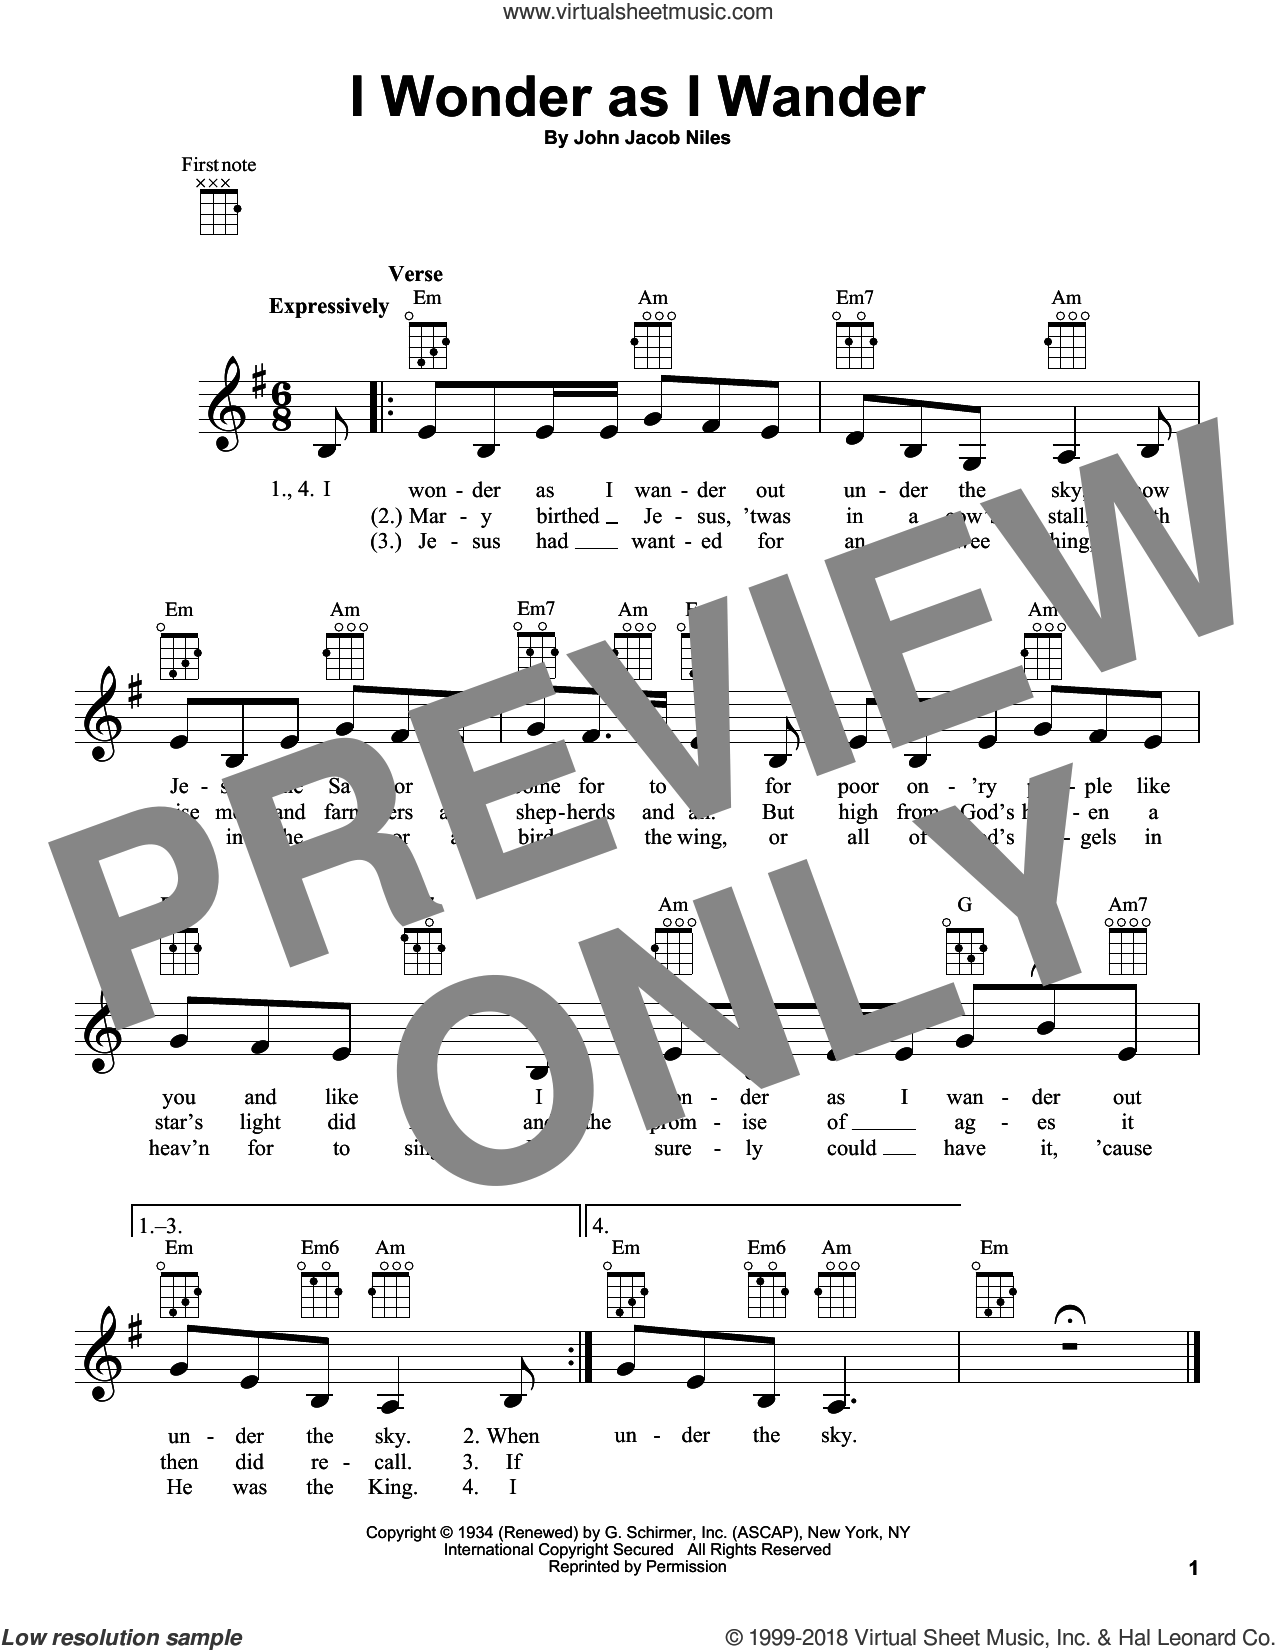 I Wonder As I Wander sheet music for ukulele by John Jacob Niles. Score Image Preview.